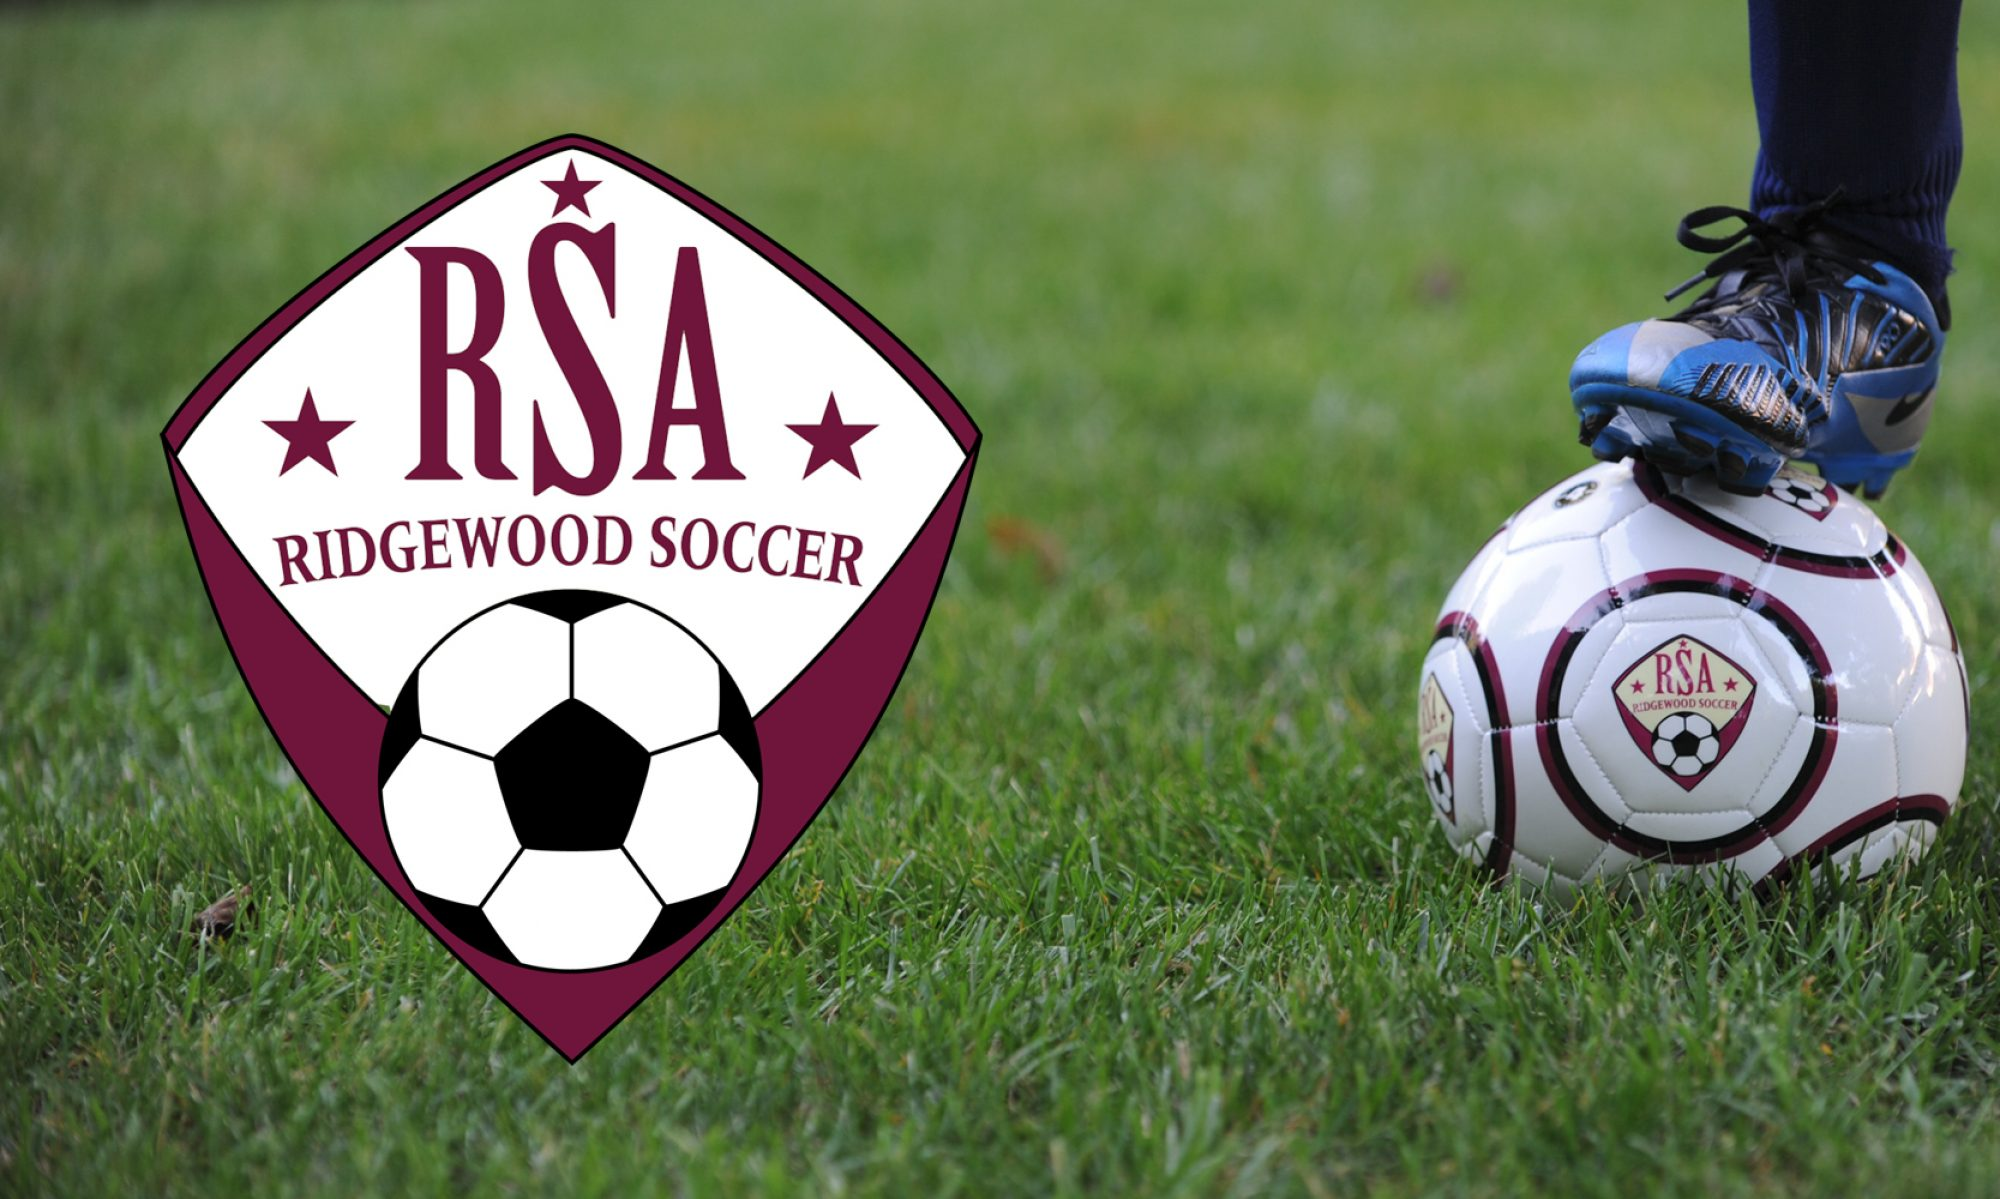 Ridgewood Soccer Association